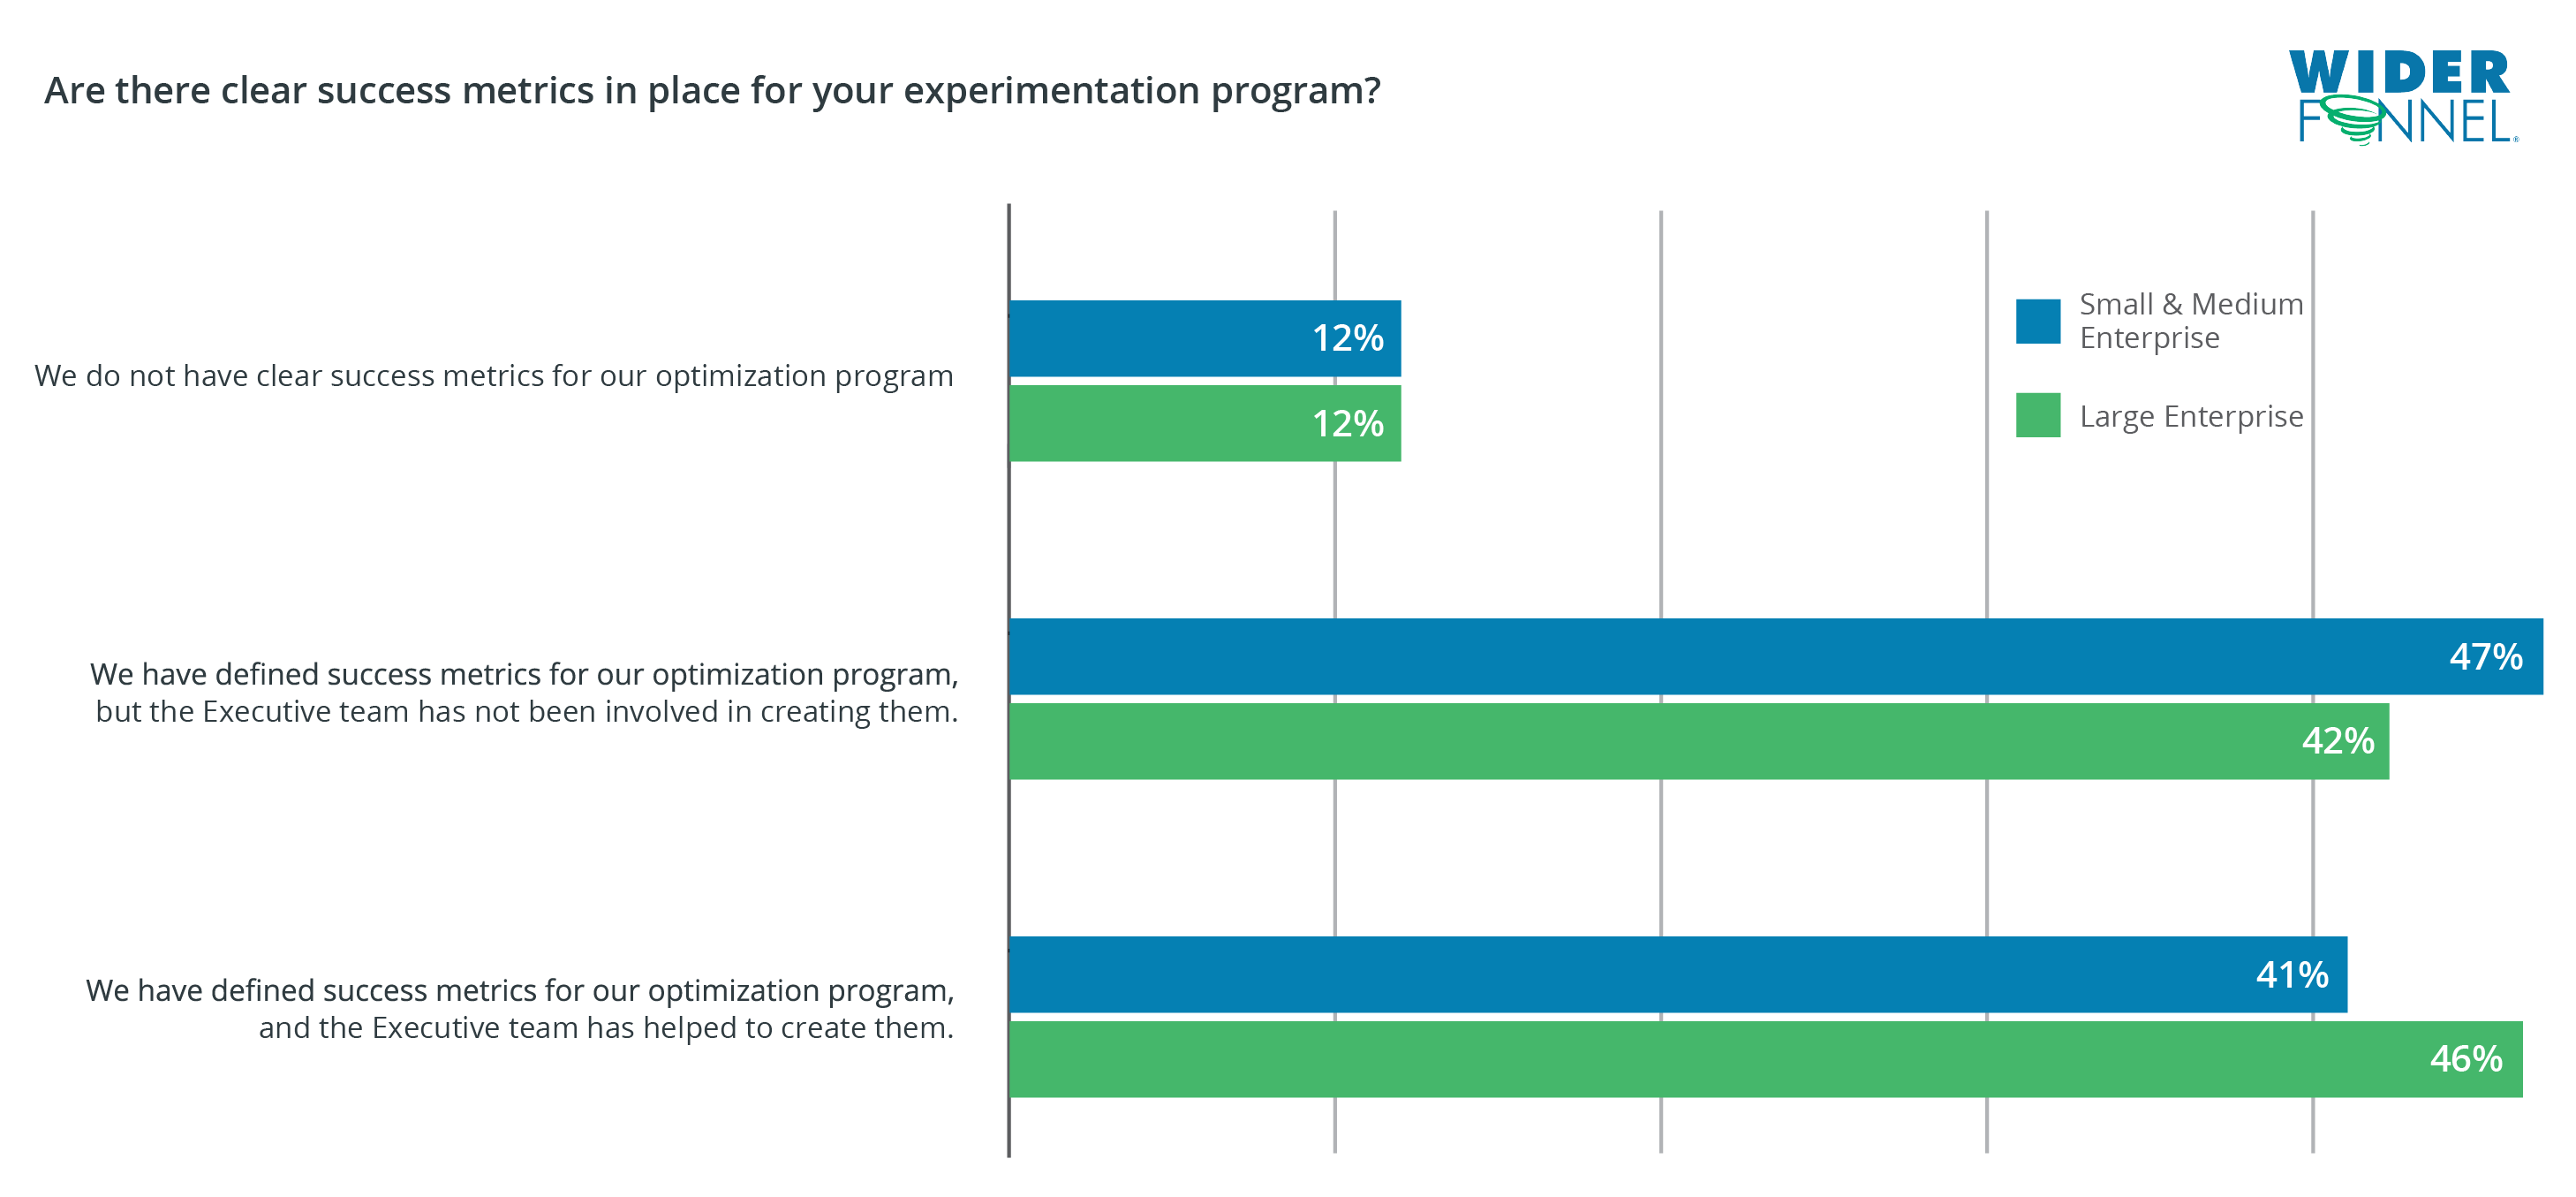 WiderFunnel State of Experimentation Maturity Clear Success Metrics